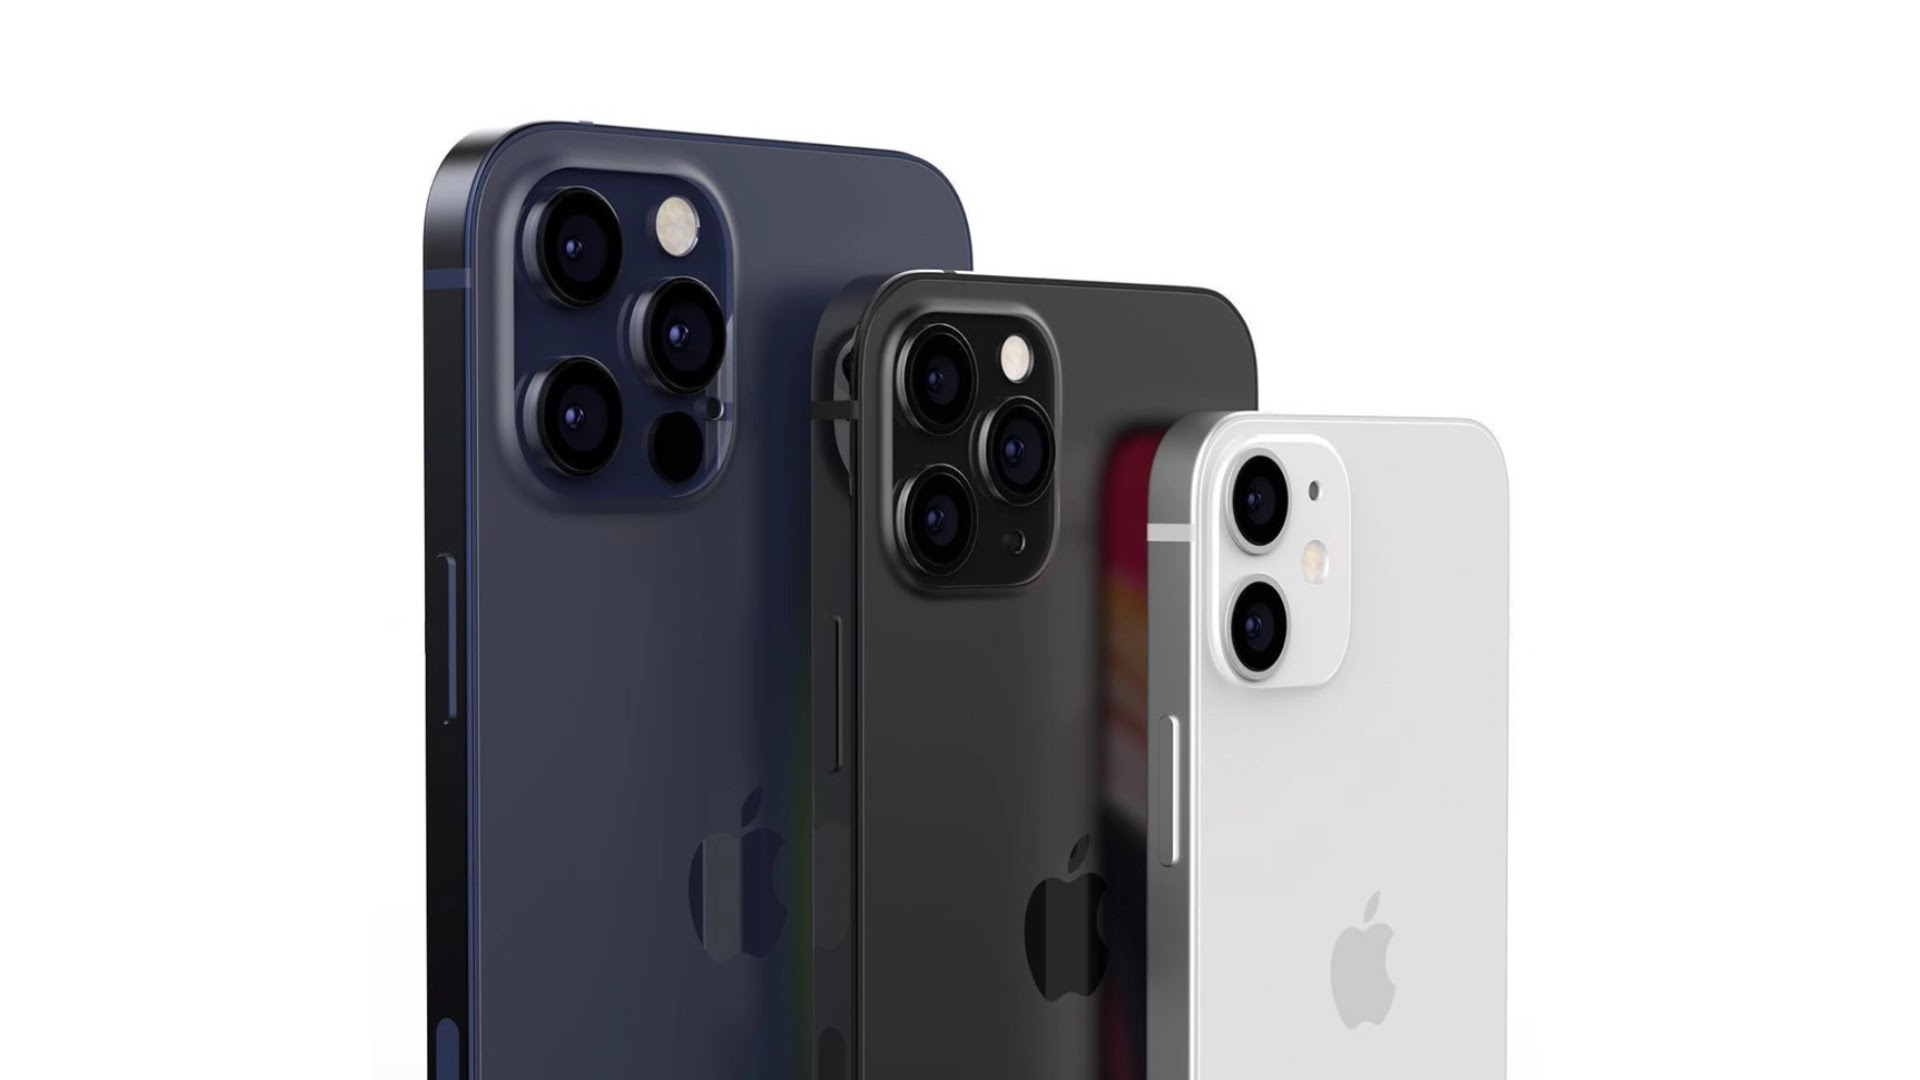 Apple iPhone 13 series phones key specifications confirmed before iPhone 12 launch